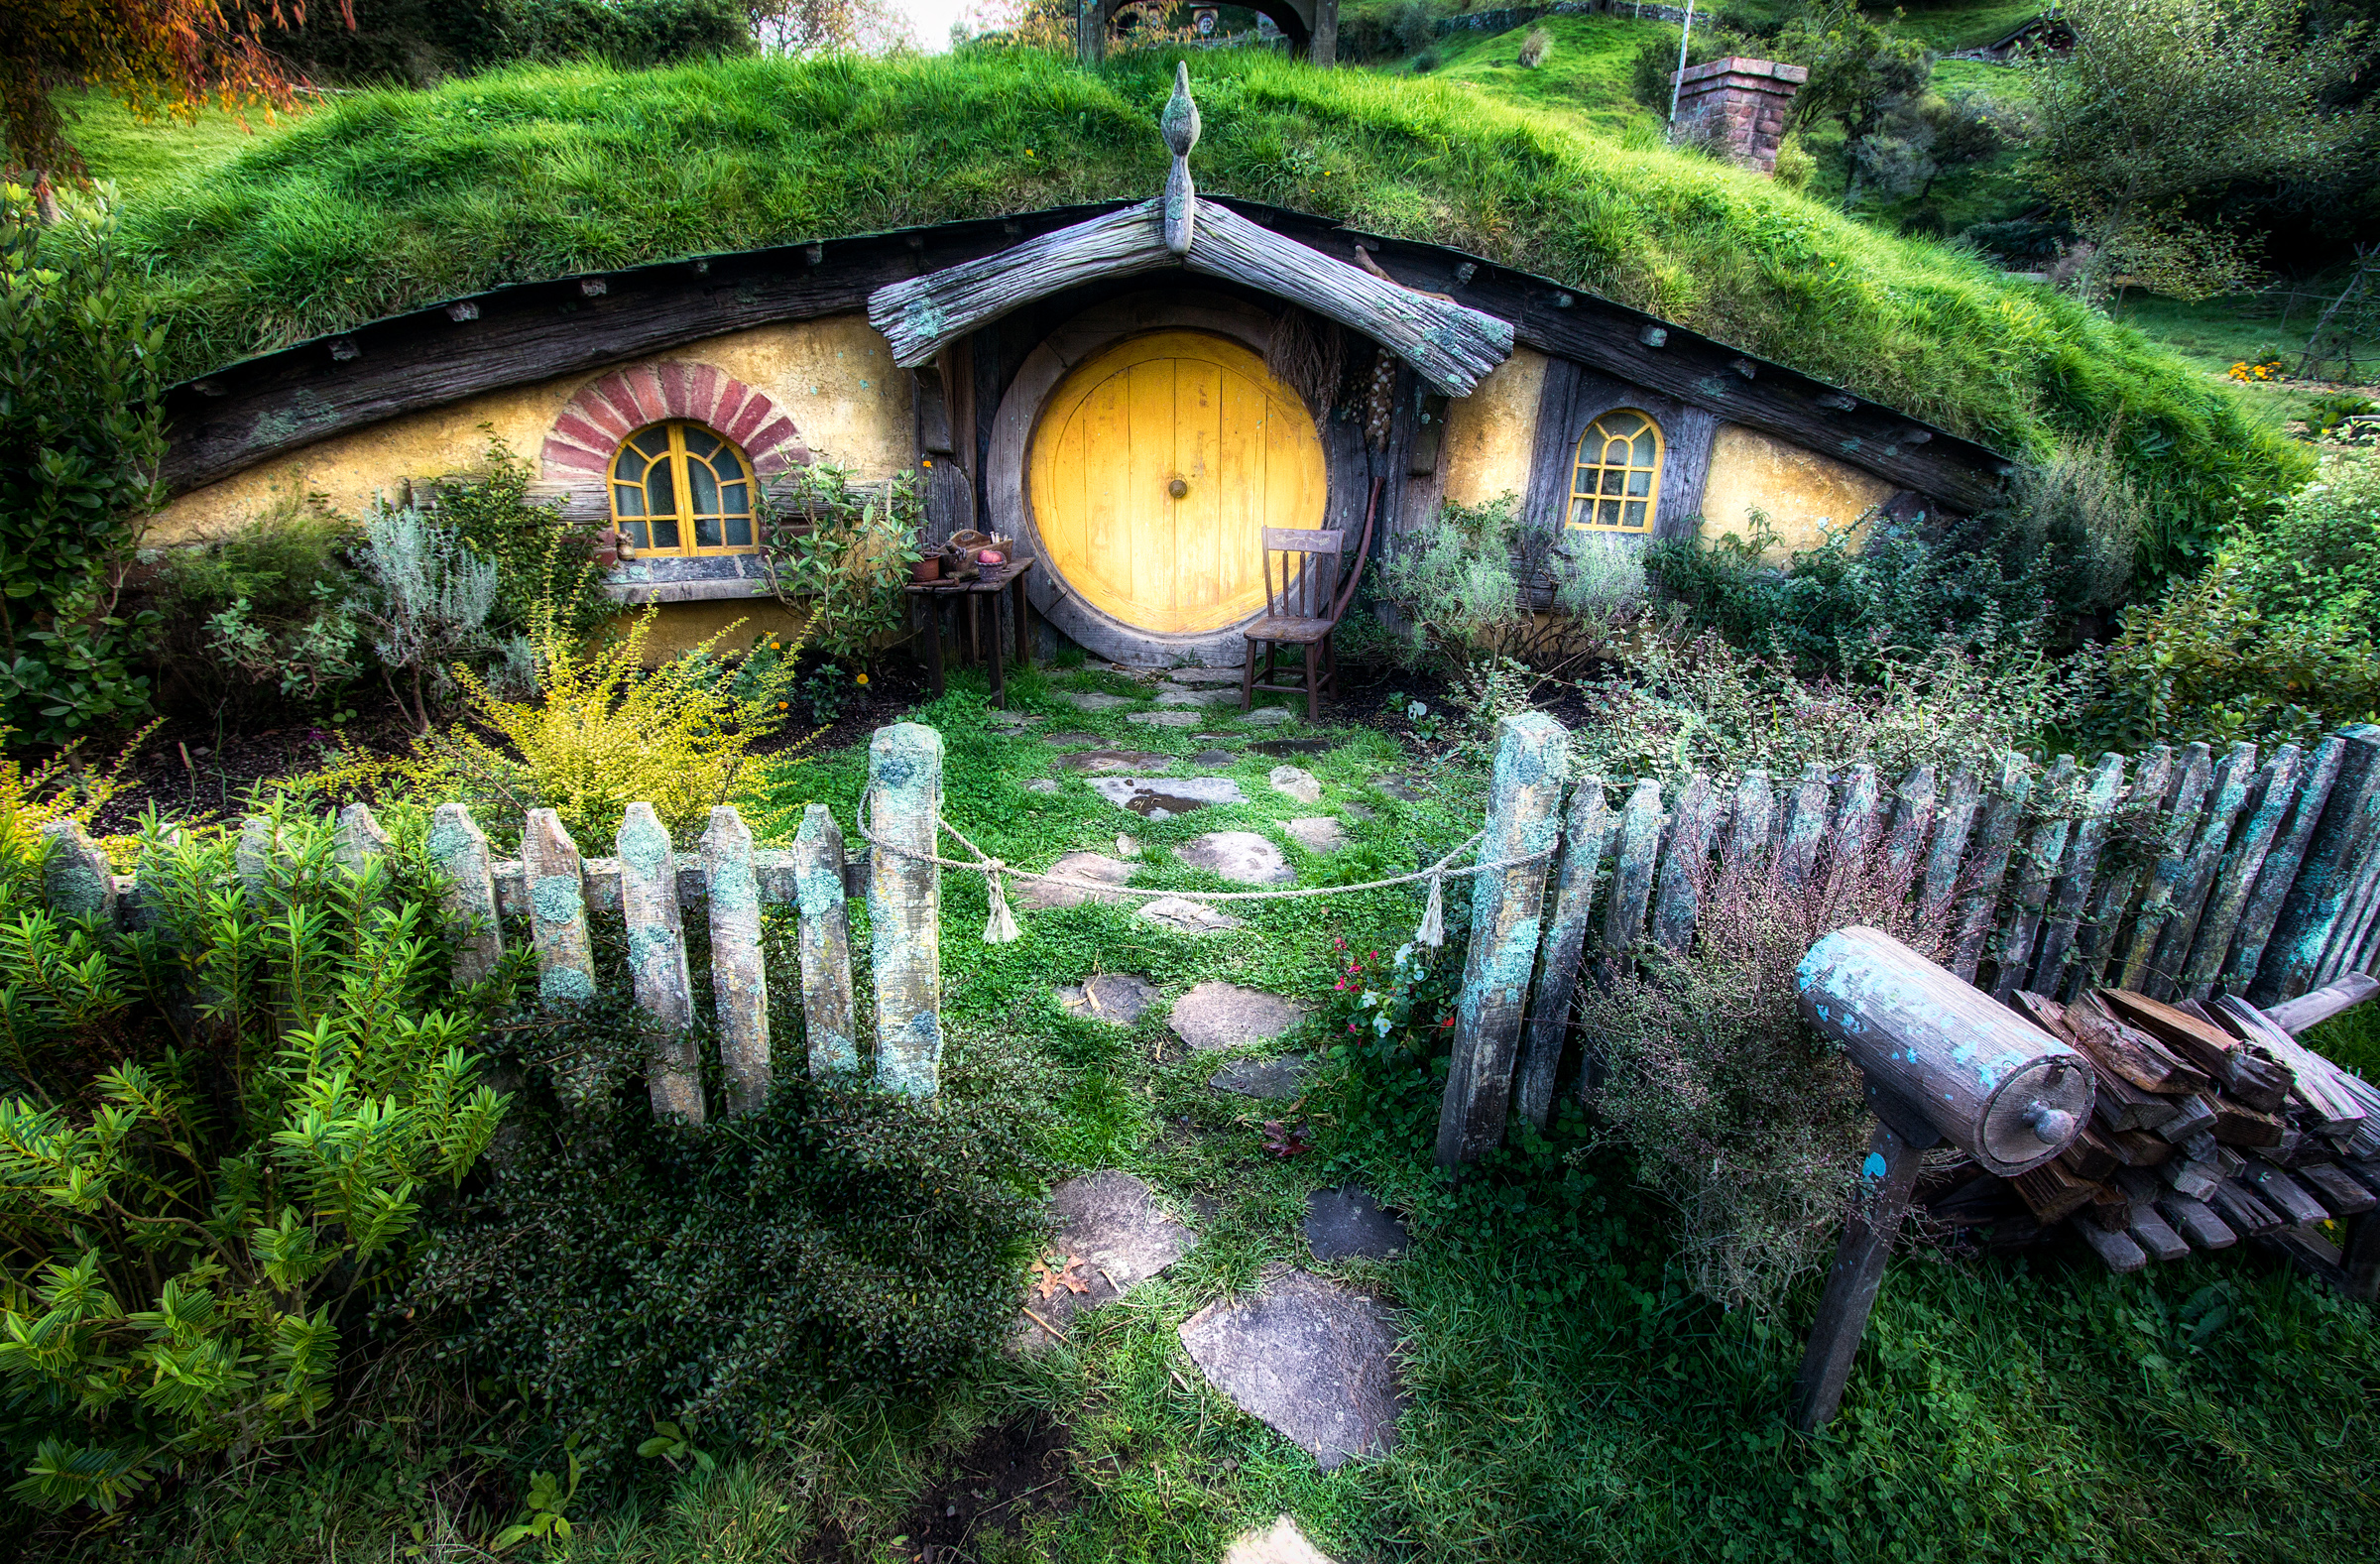 hobbit house from lord of the rings by michael matti